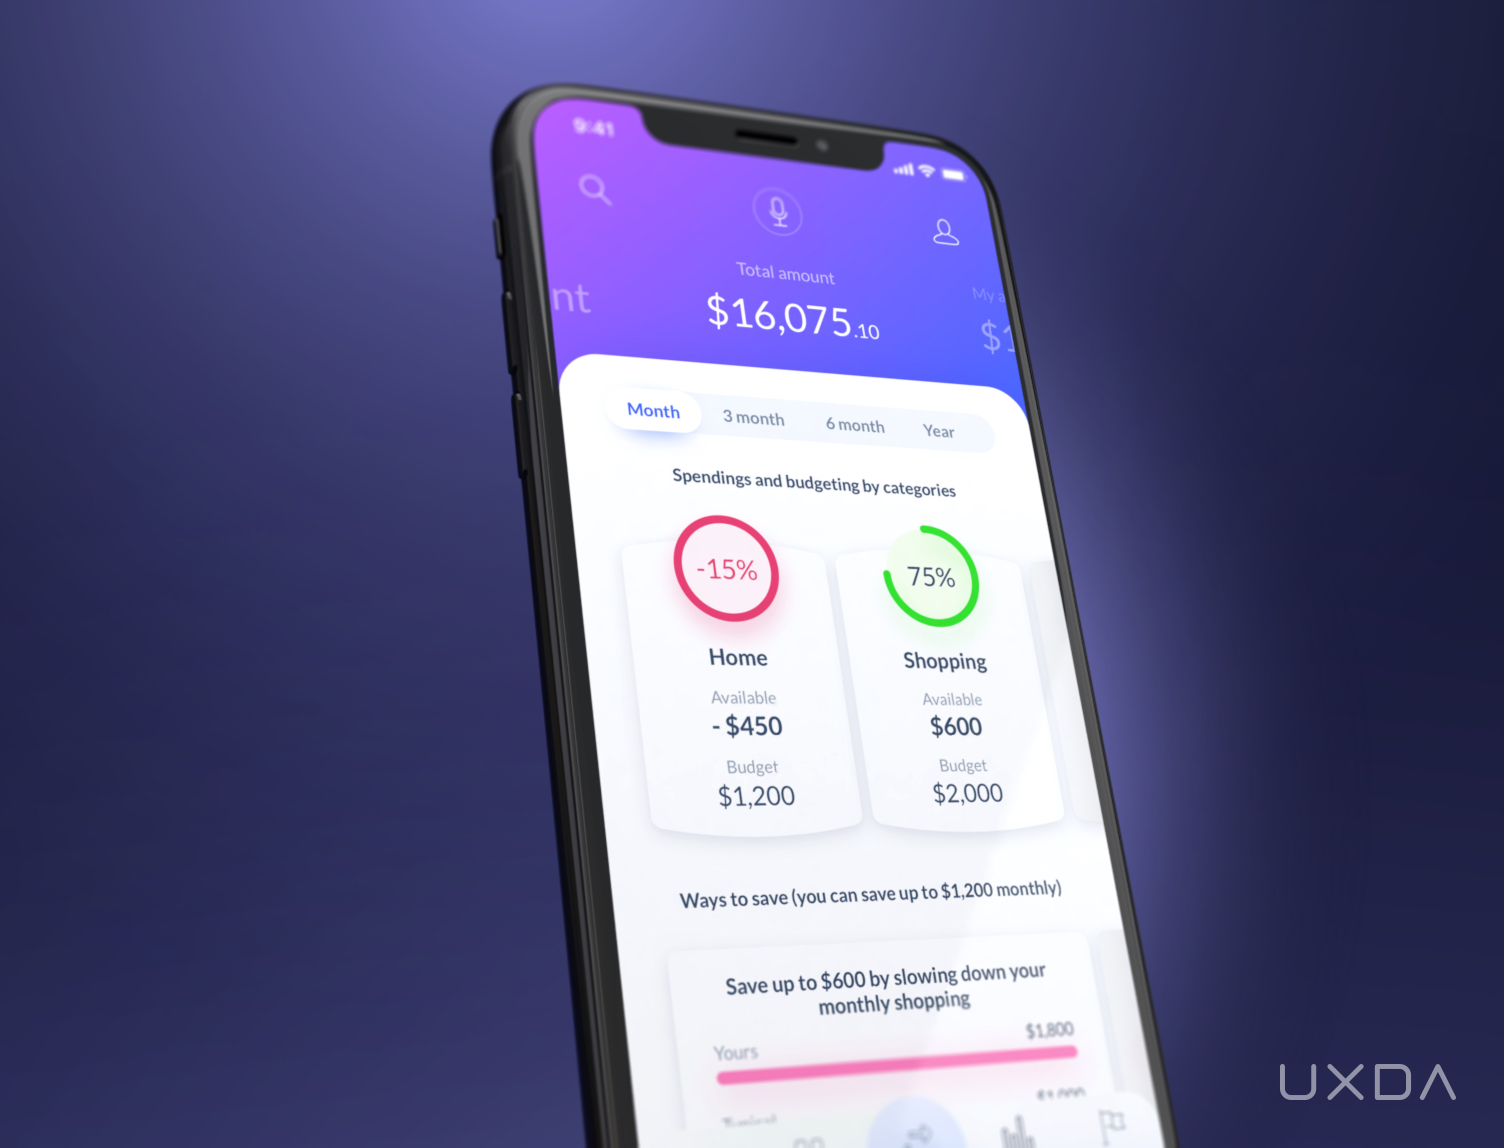 ux-case-study-how-to-create-a-mobile-banking-super-app-s-12.jpg